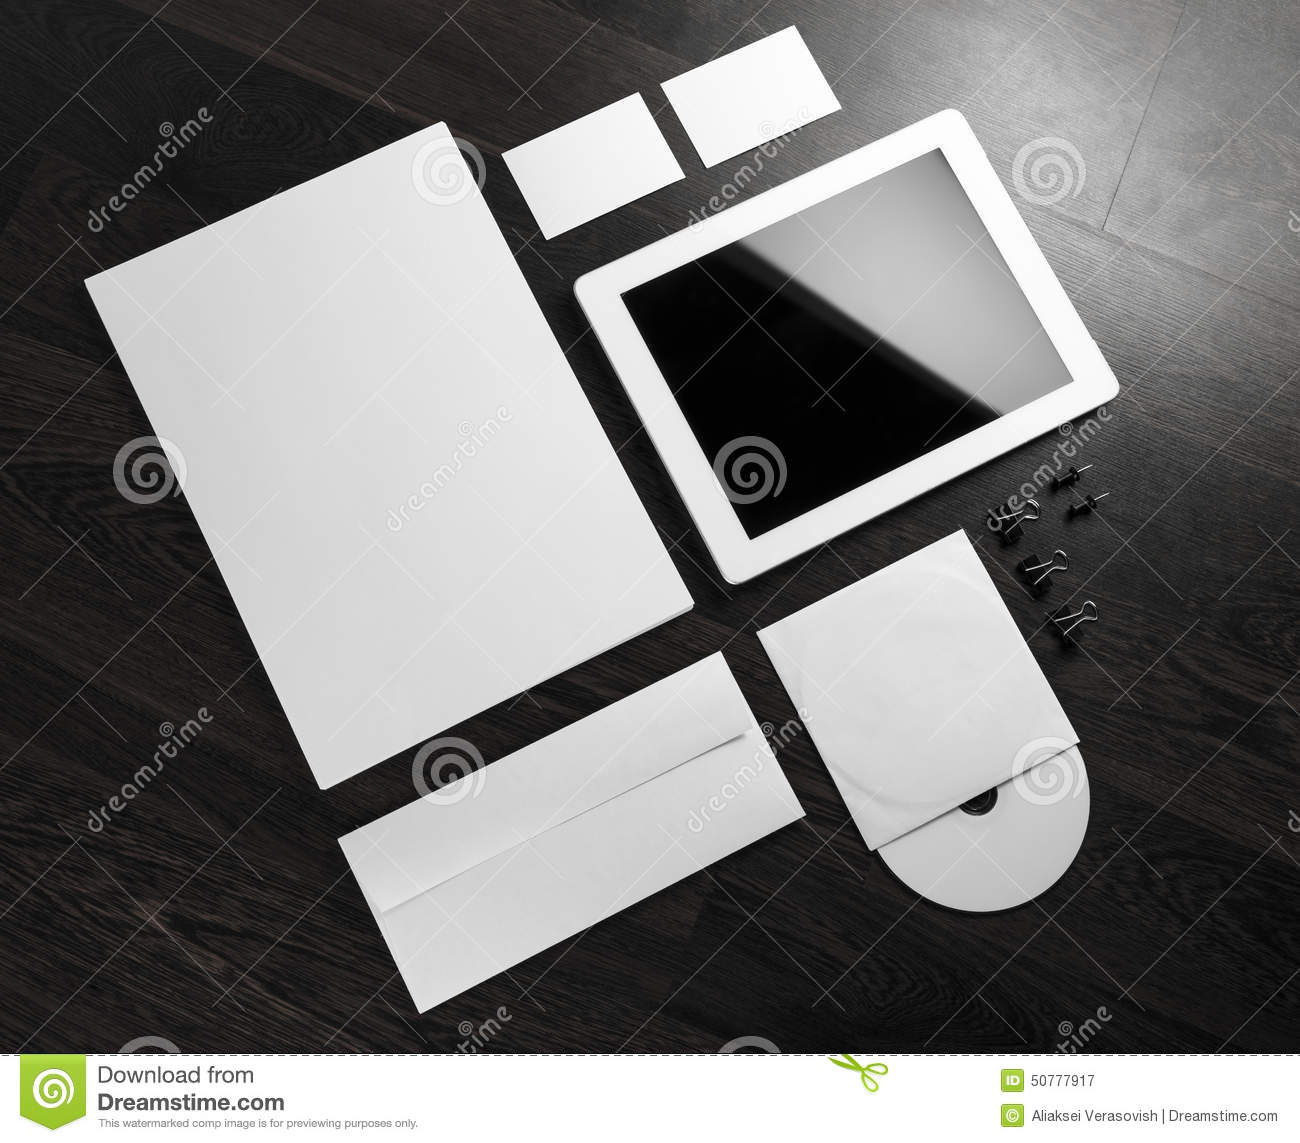 Blank Stationery And Corporate Identity Template Consist: Blank Stationery Stock Image. Image Of Objects, Order